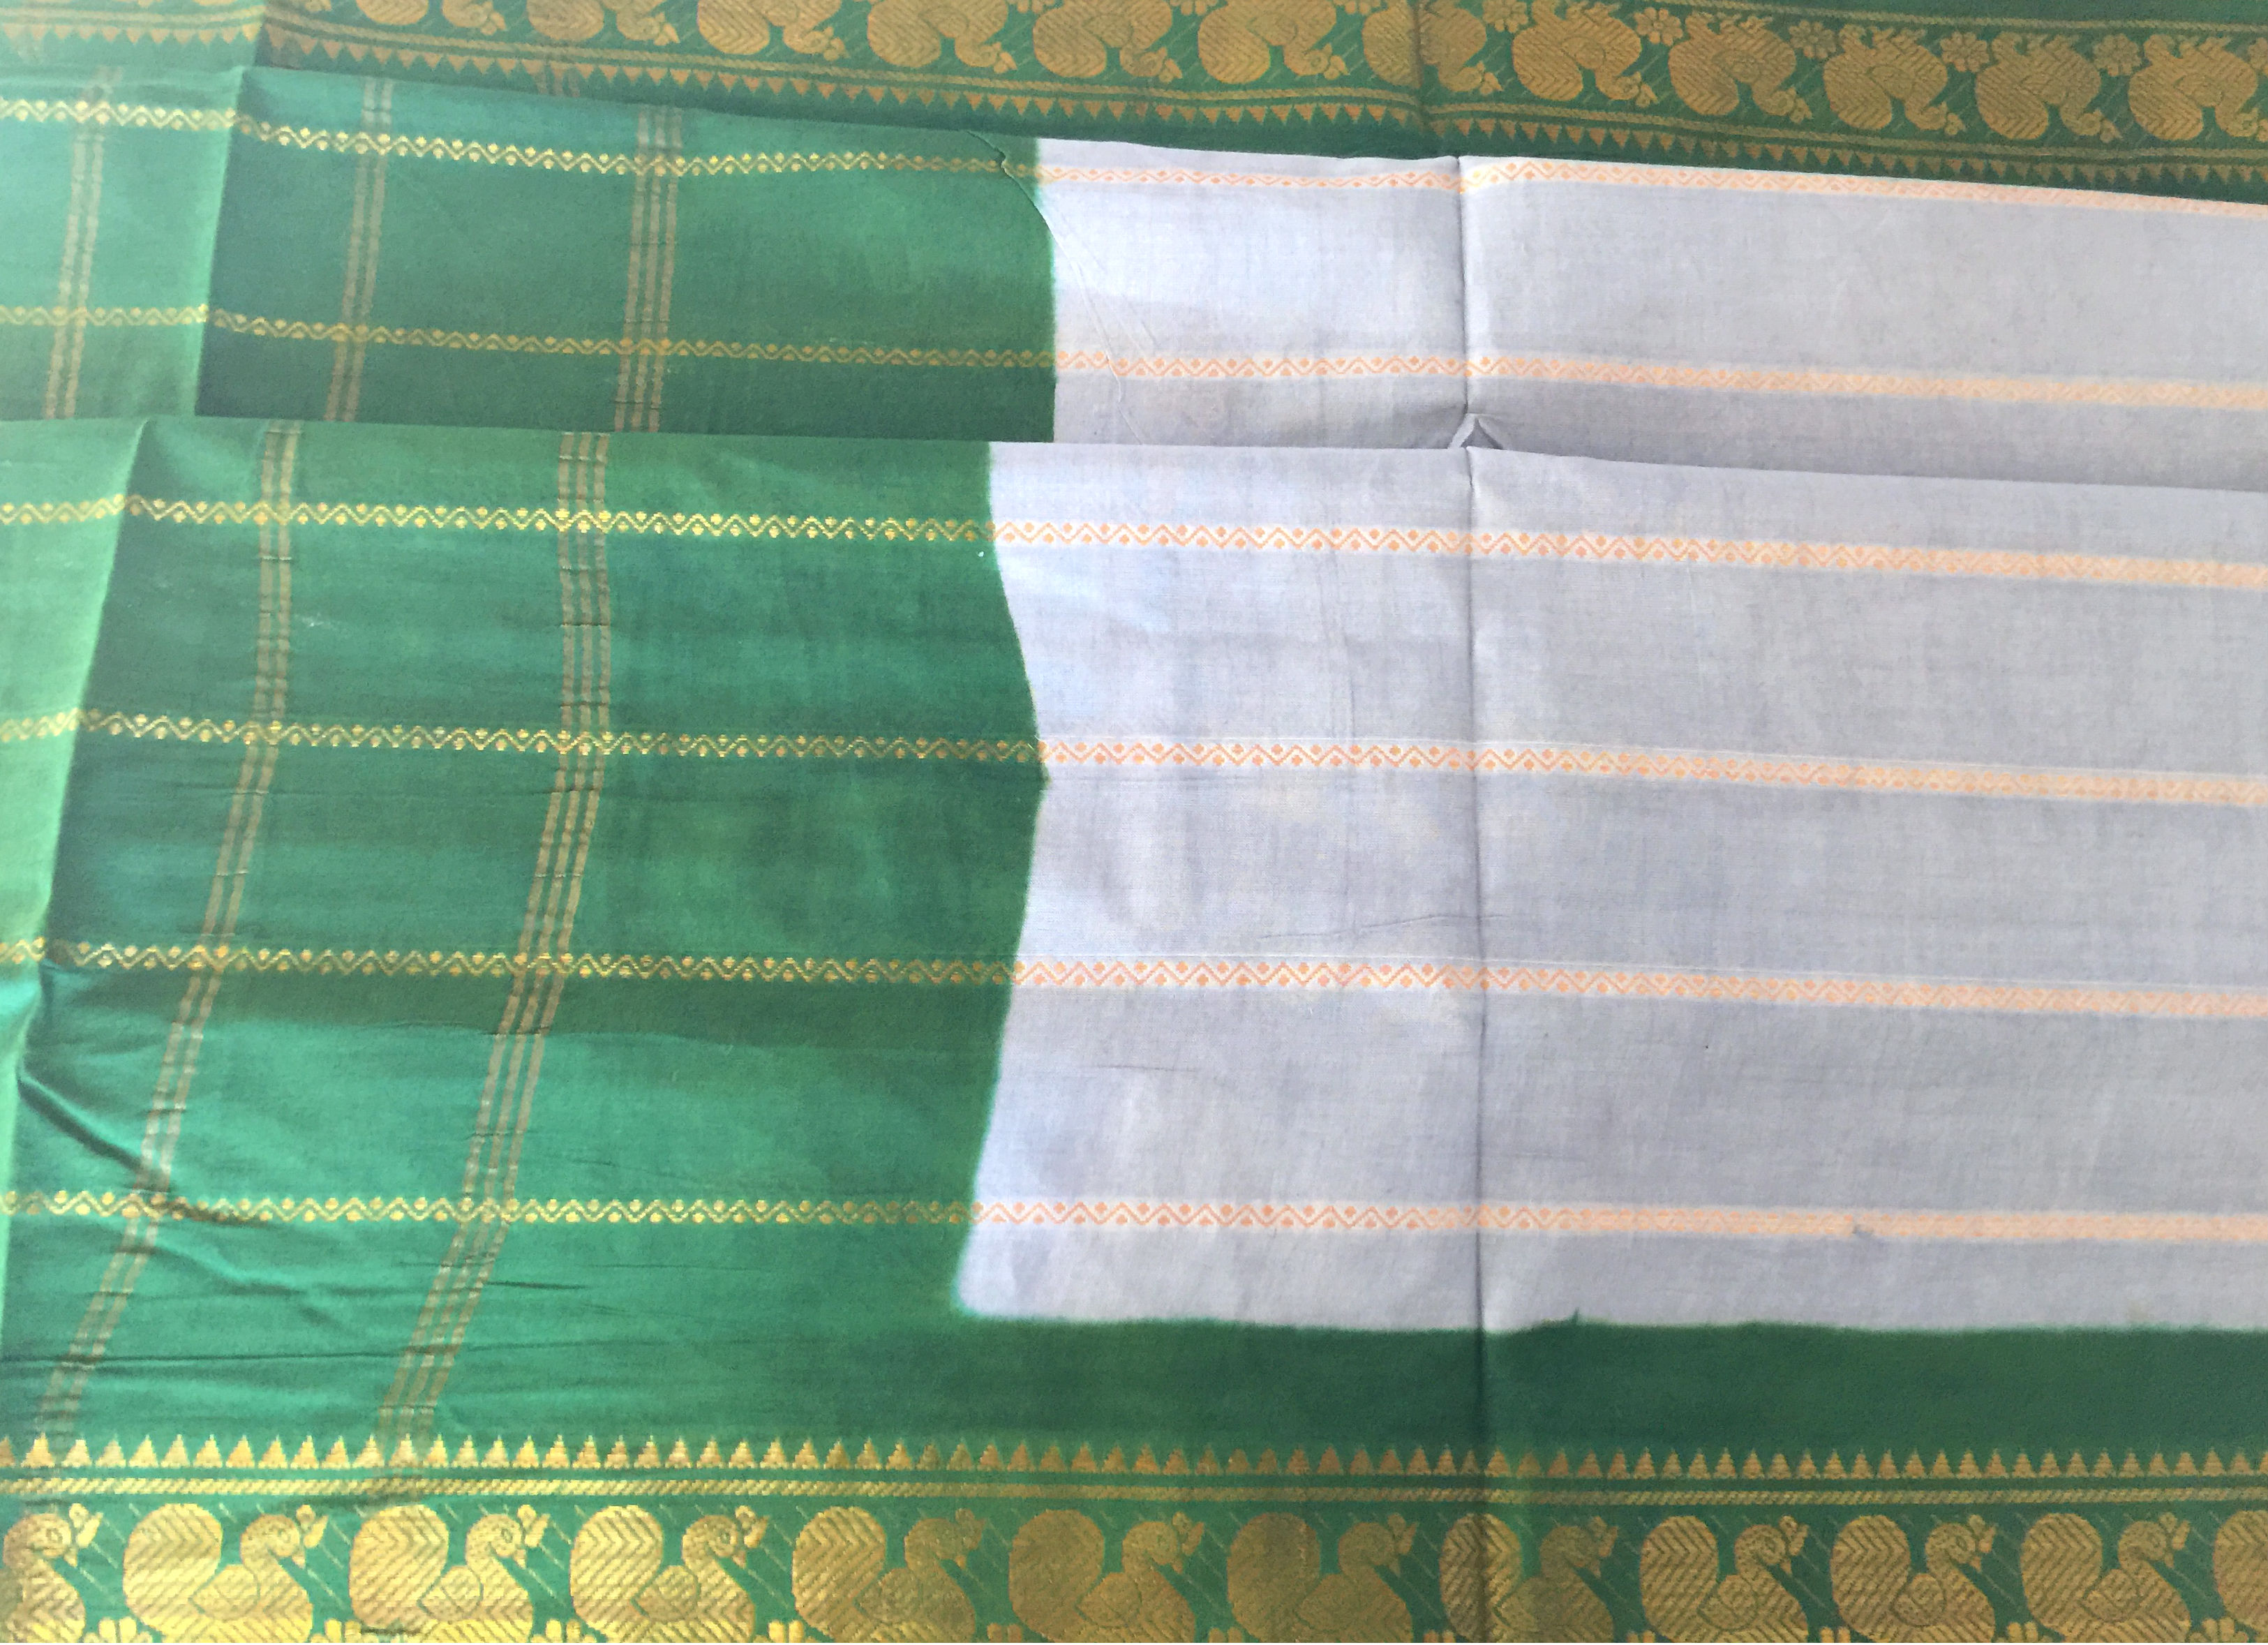 Madurai Cotton Light Blue and Green with Blouse Fabric